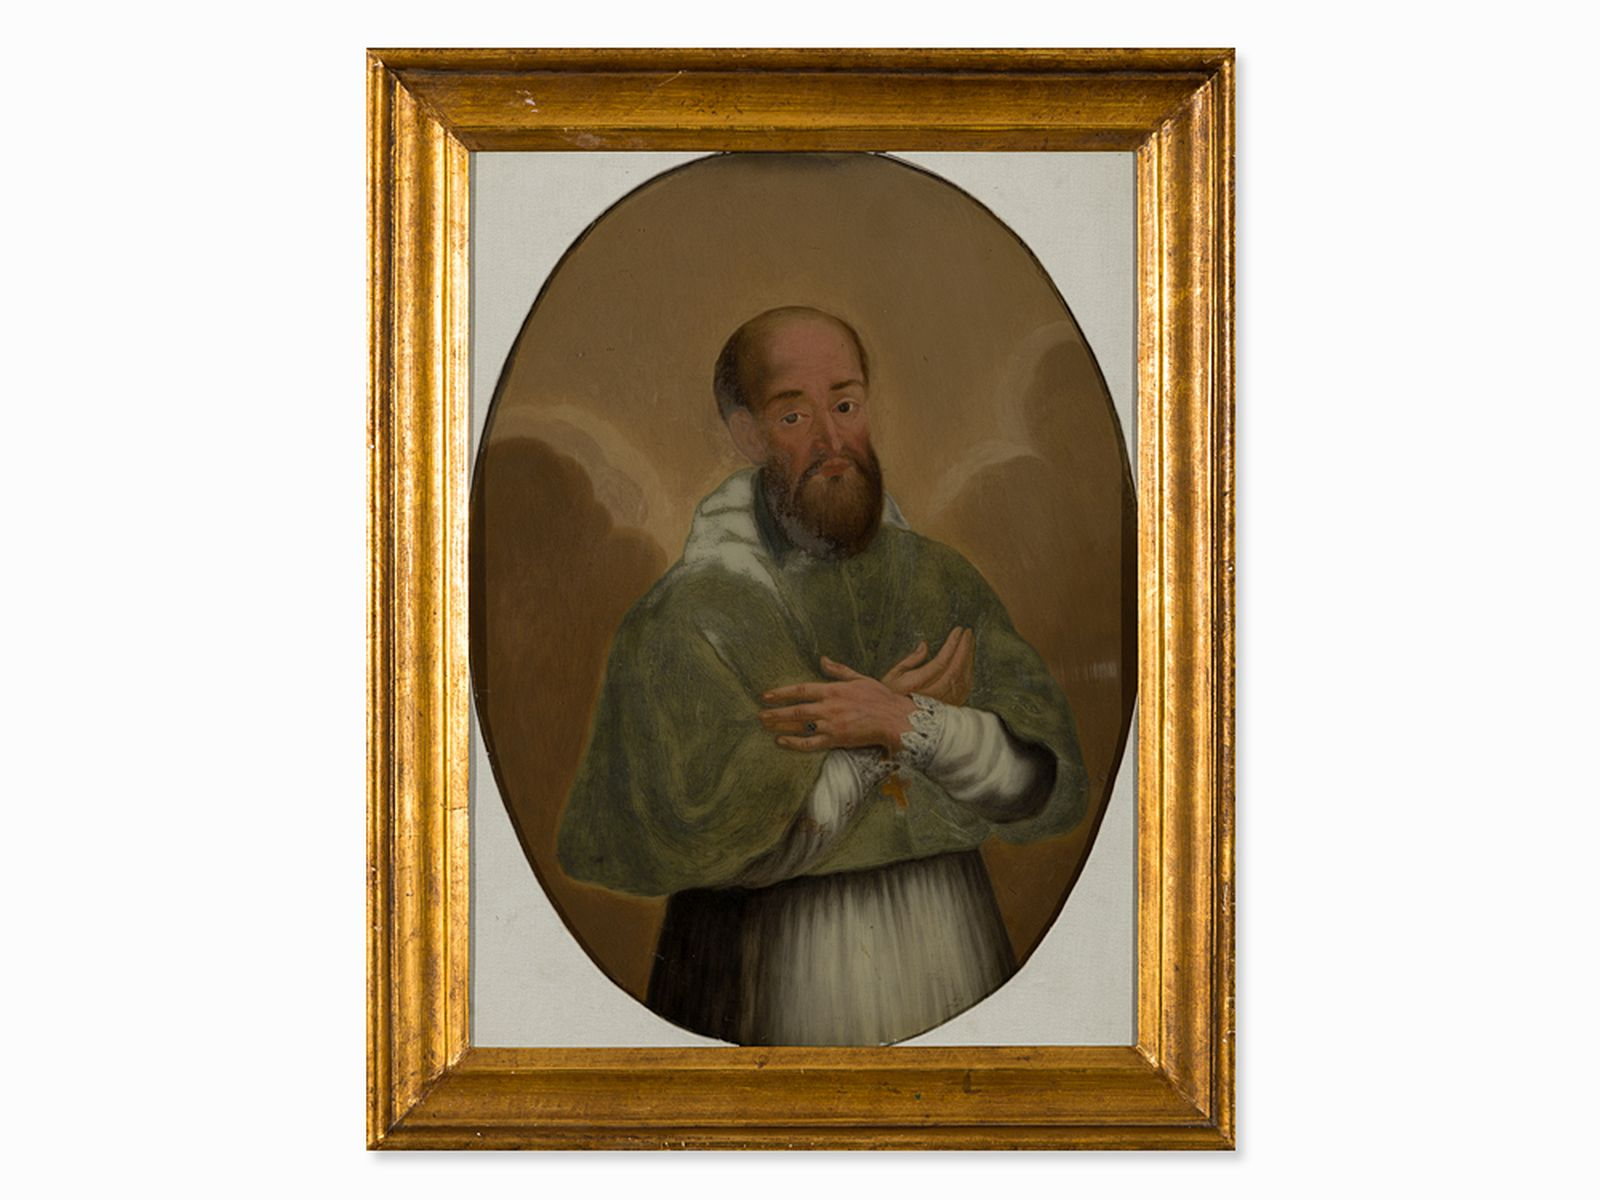 #31 Portrait Church Father, Reverse Glass Painting, Spain, 18th C. | Image